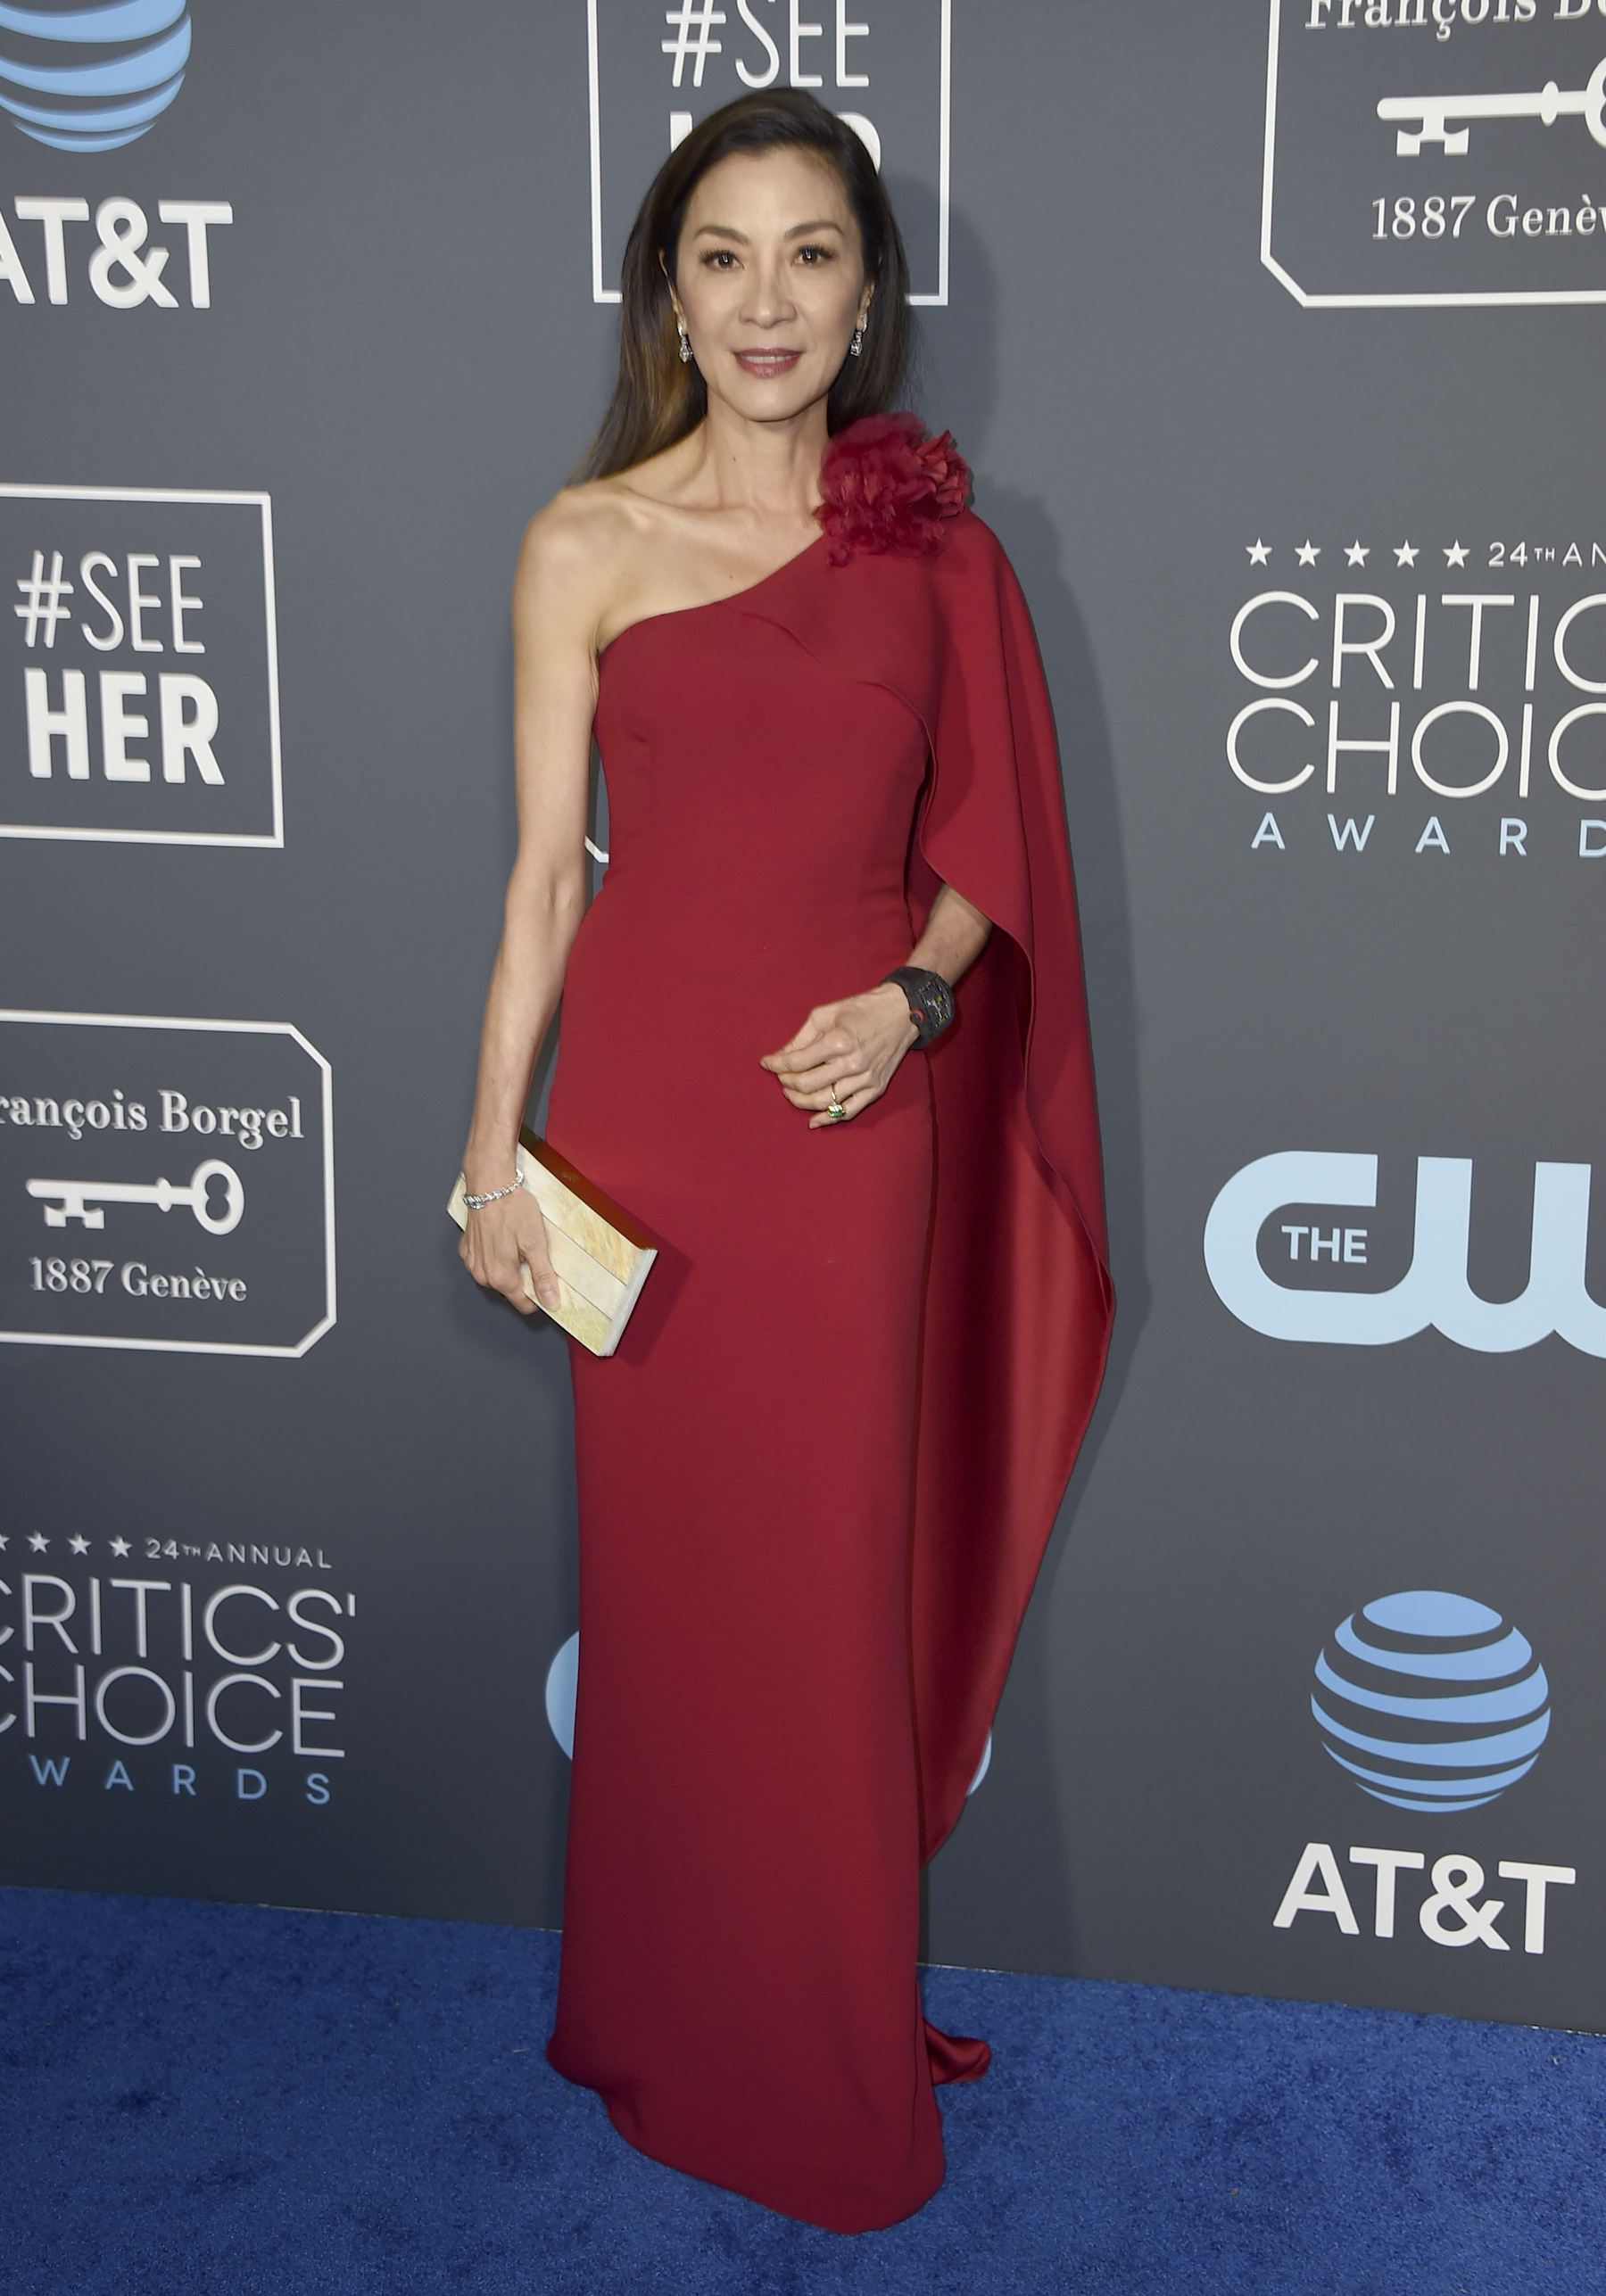 "<div class=""meta image-caption""><div class=""origin-logo origin-image ap""><span>AP</span></div><span class=""caption-text"">Michelle Yeoh arrives at the 24th annual Critics' Choice Awards on Sunday, Jan. 13, 2019, at the Barker Hangar in Santa Monica, Calif. (Jordan Strauss/Invision/AP)</span></div>"